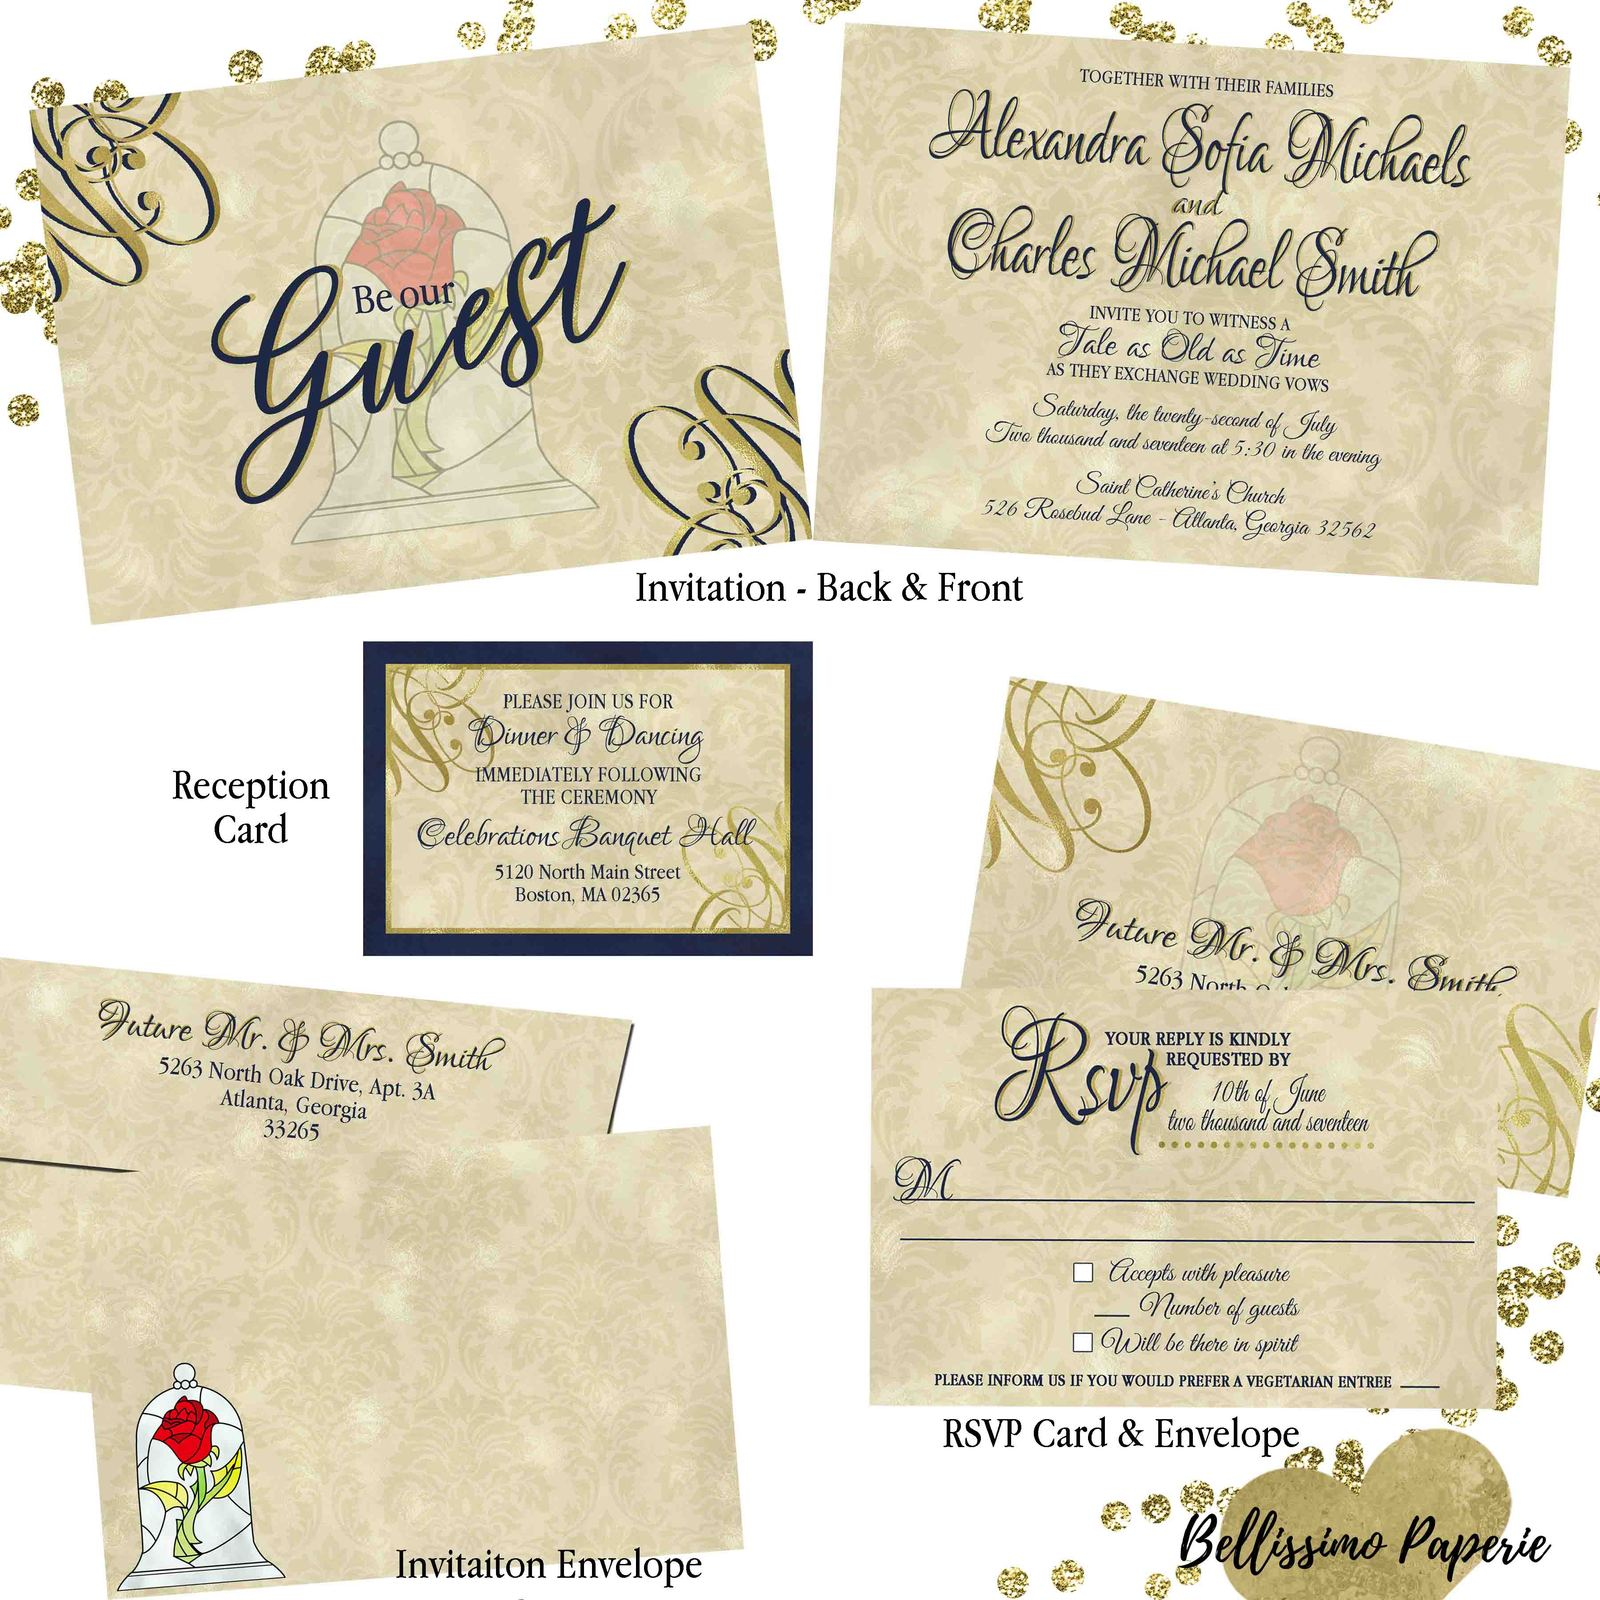 Beauty and the Beast Wedding invitation Set: RSVP Reception Envelope Navy Gold